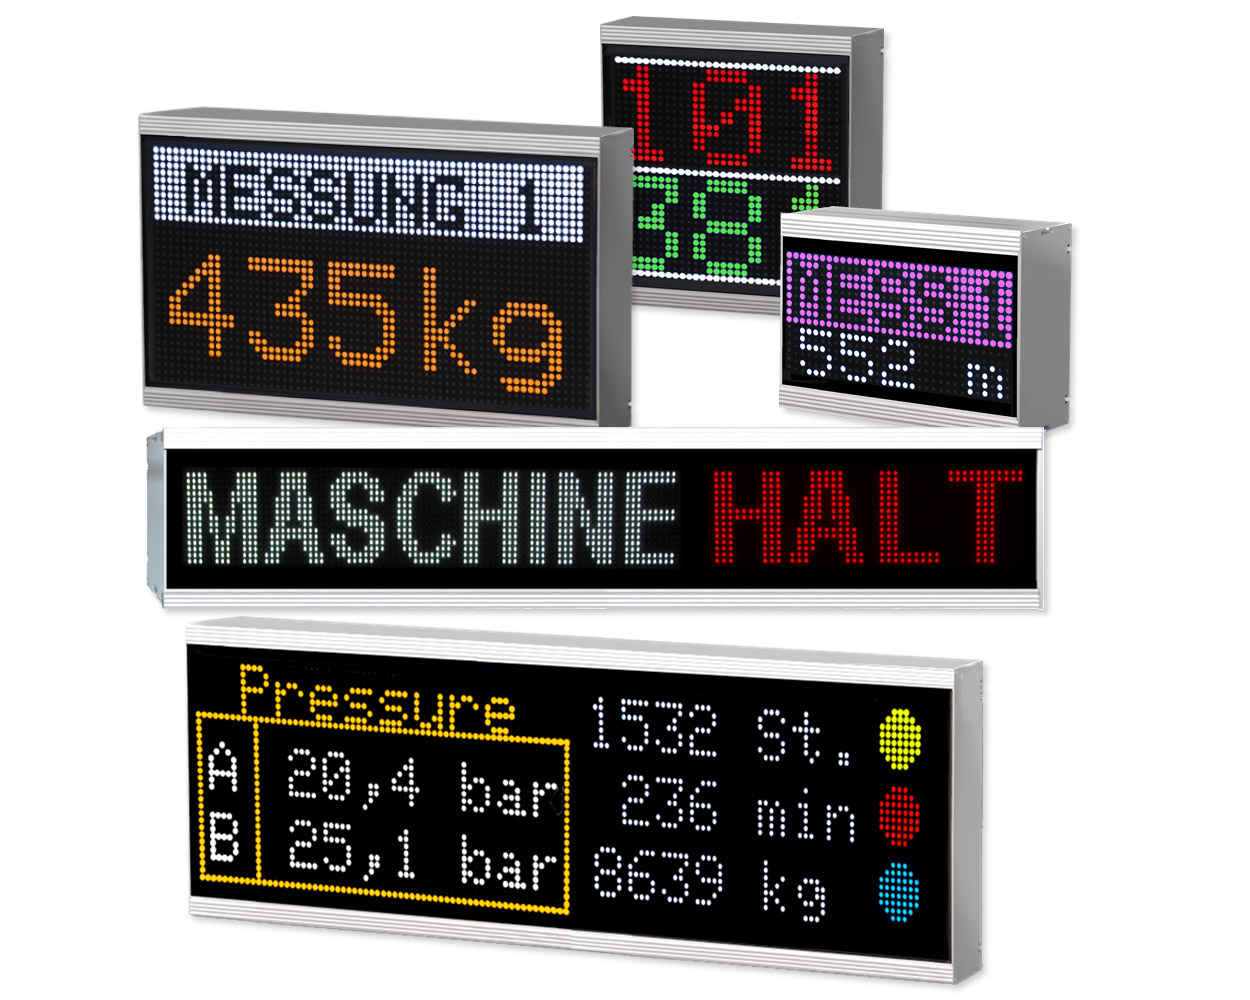 Alphanumeric large displays, 16 colors, indoor/outdoor, modular design, numerous different sizes available